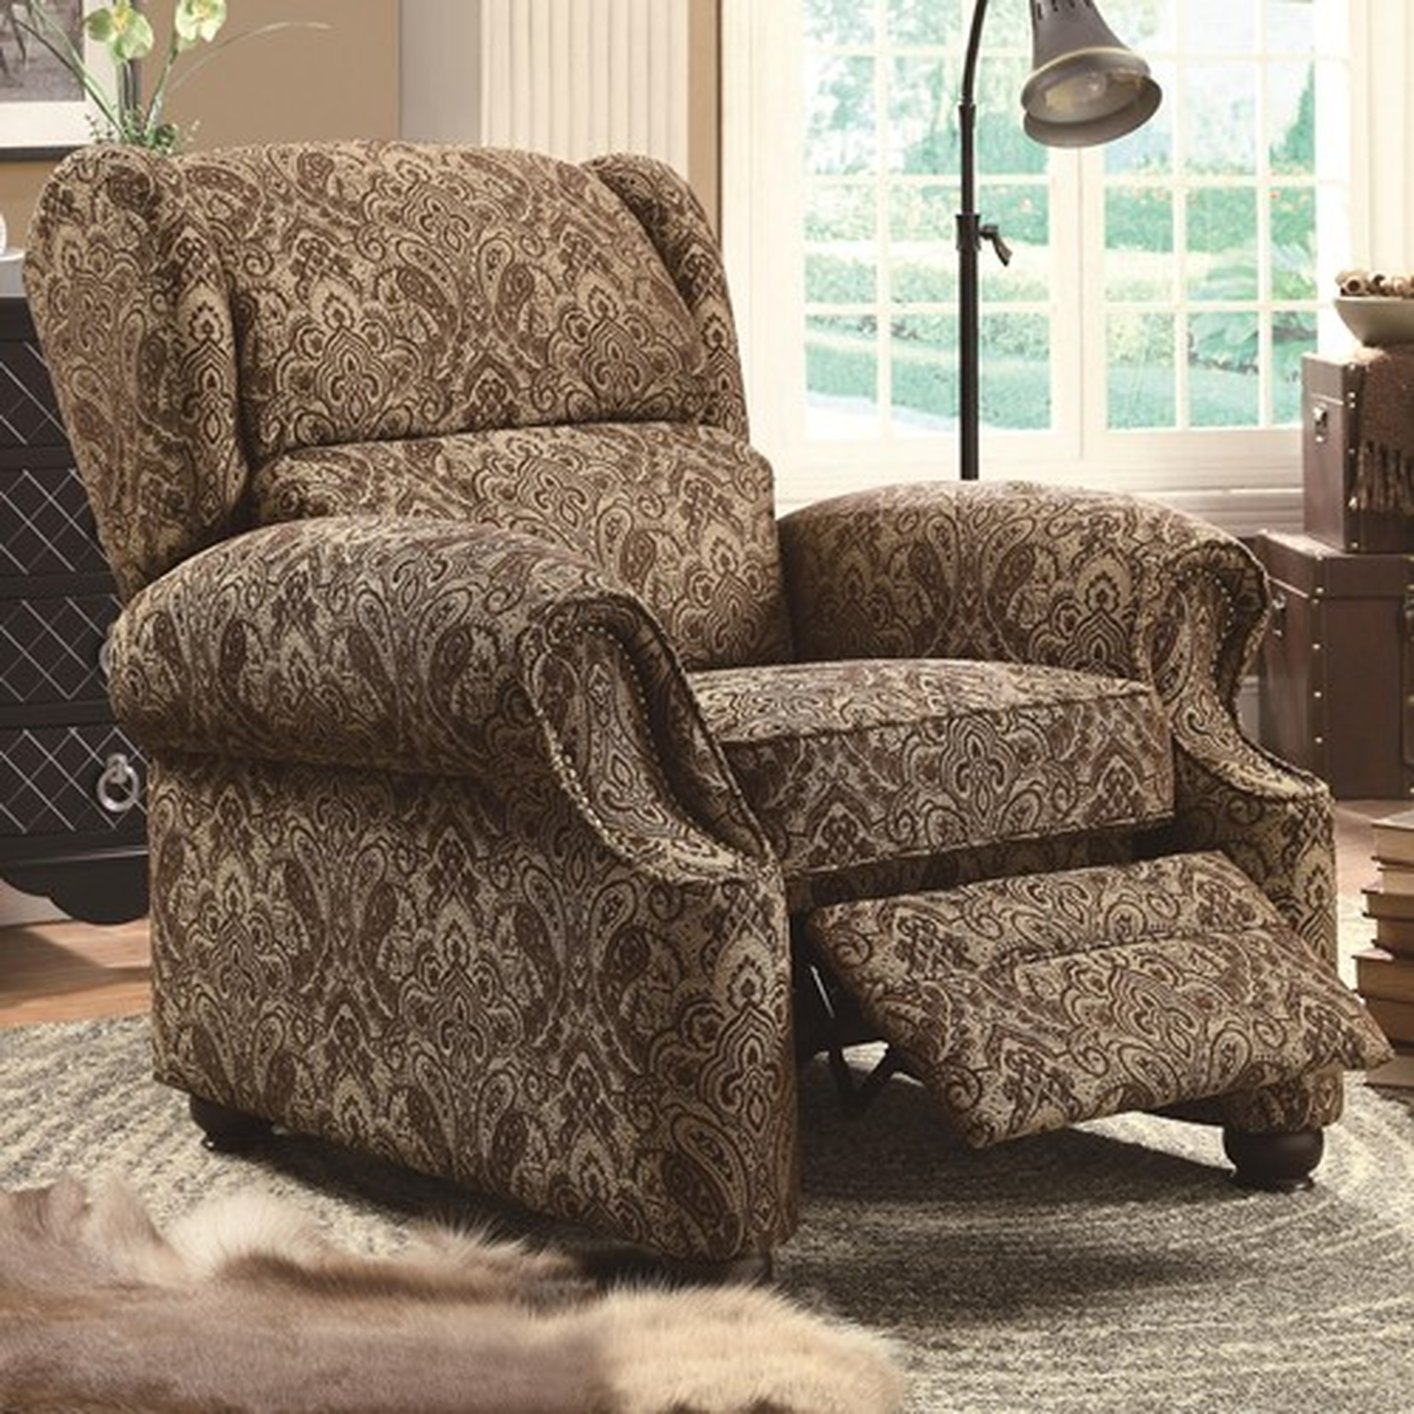 Brown Fabric Reclining Chair Steal A Sofa Furniture Outlet Los